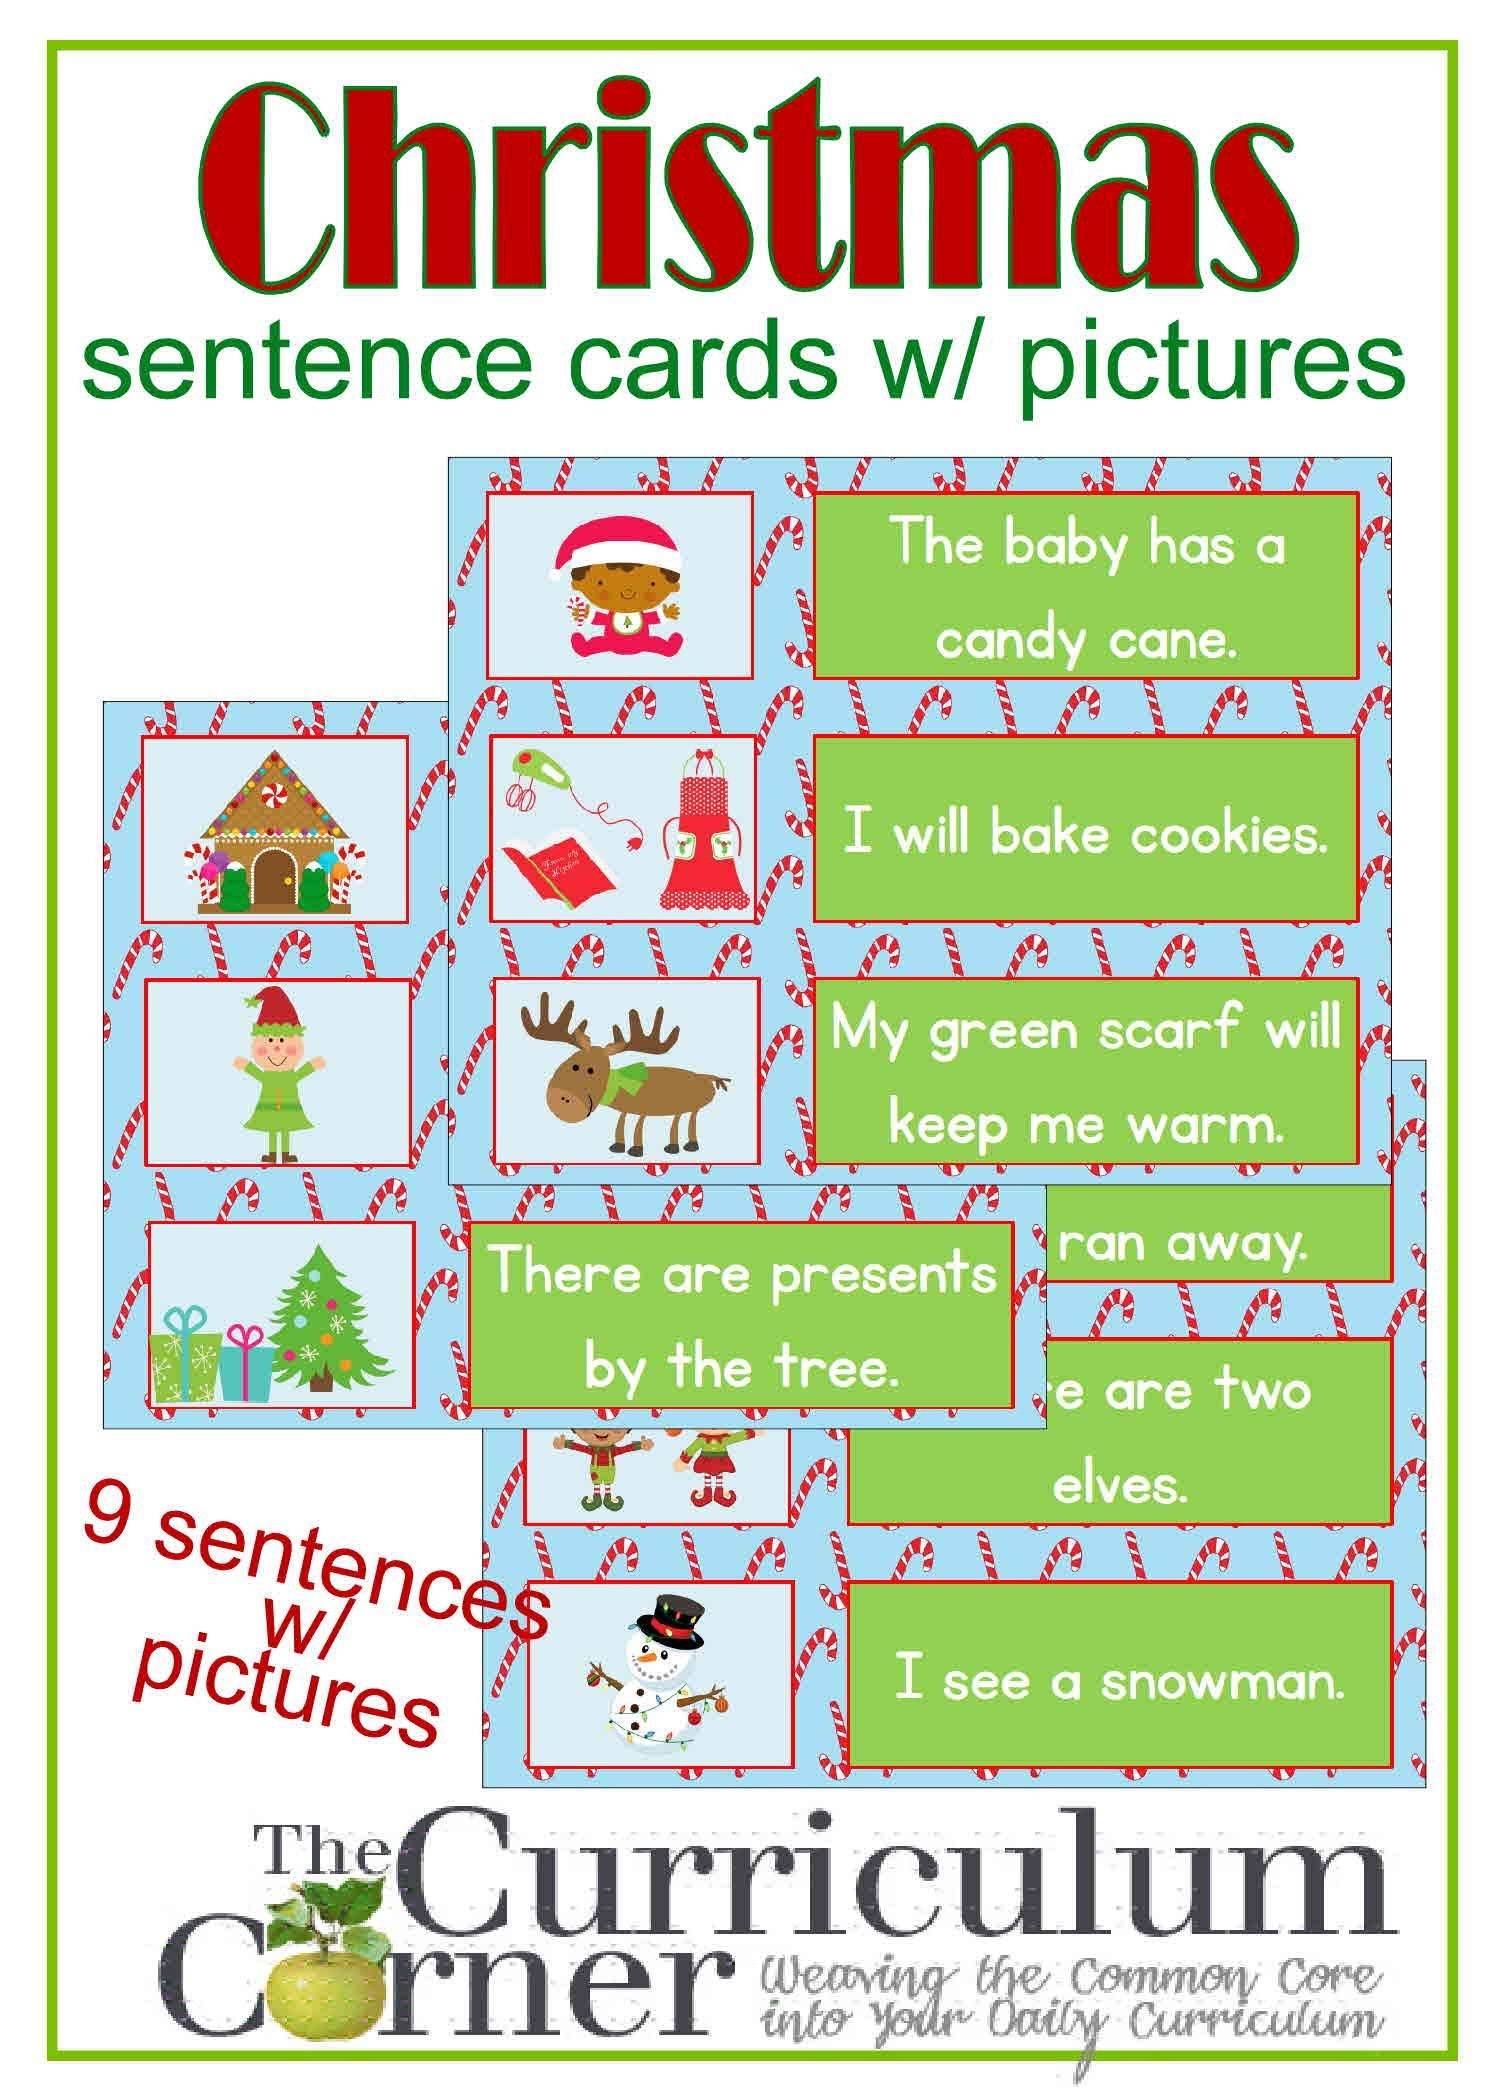 Christmas Sentence Cards W Pictures